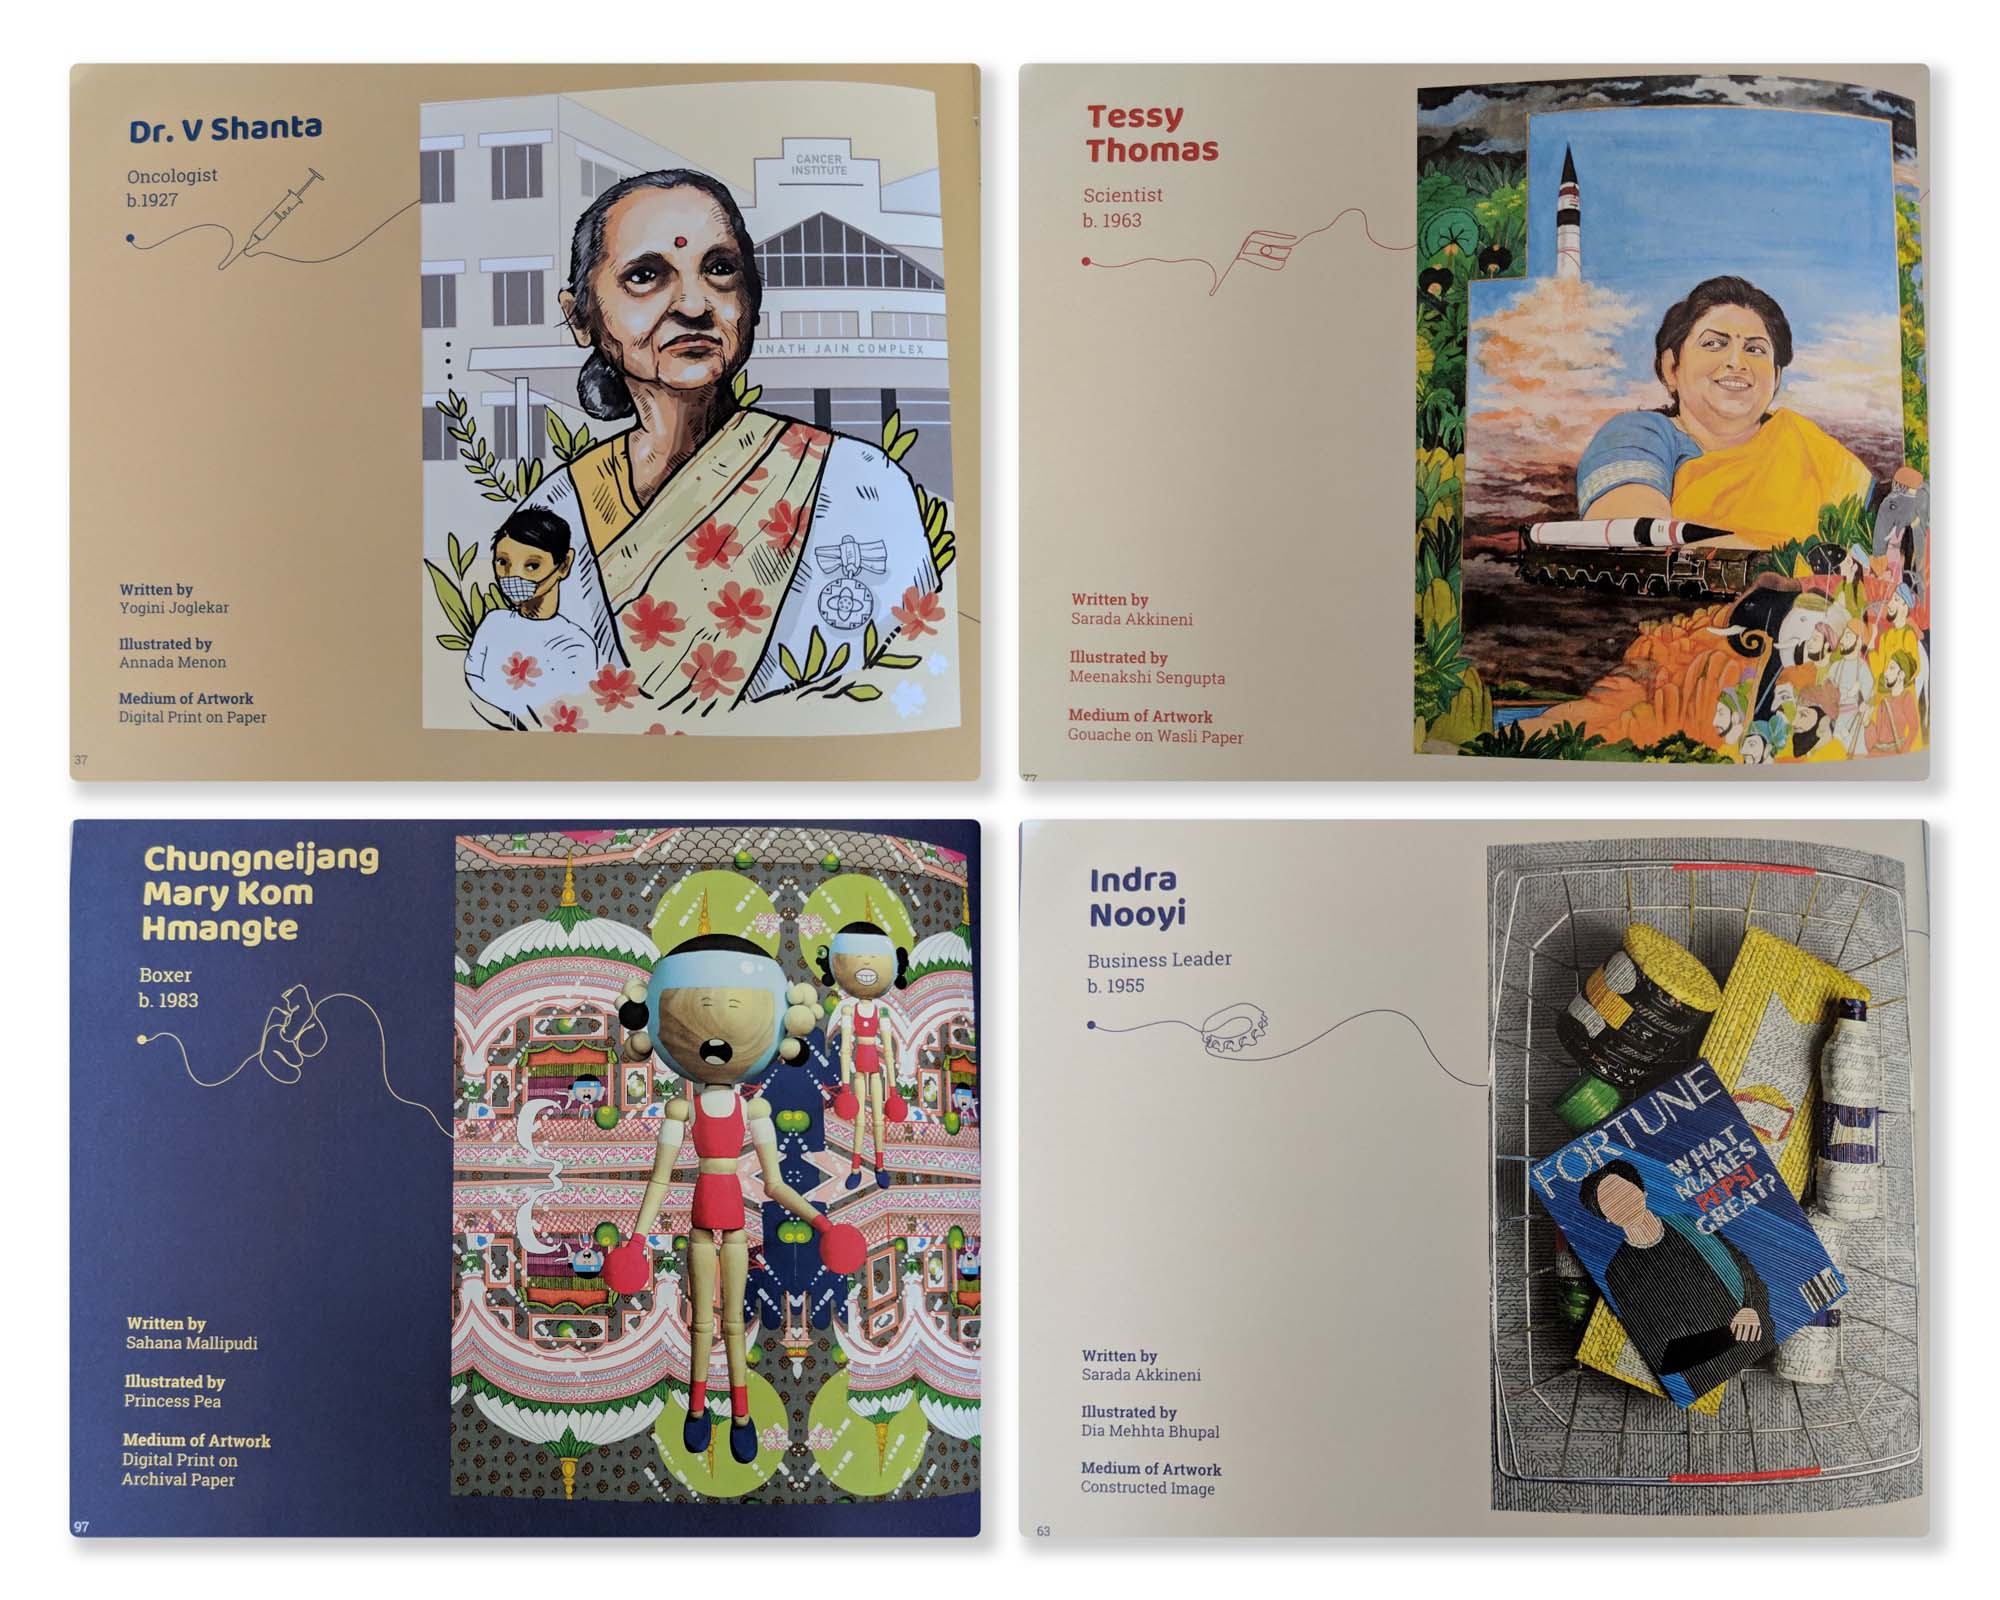 A few of the short stories - Dr V Shanta, Tessy Thomas, Mary Kom & Indra Nooyi